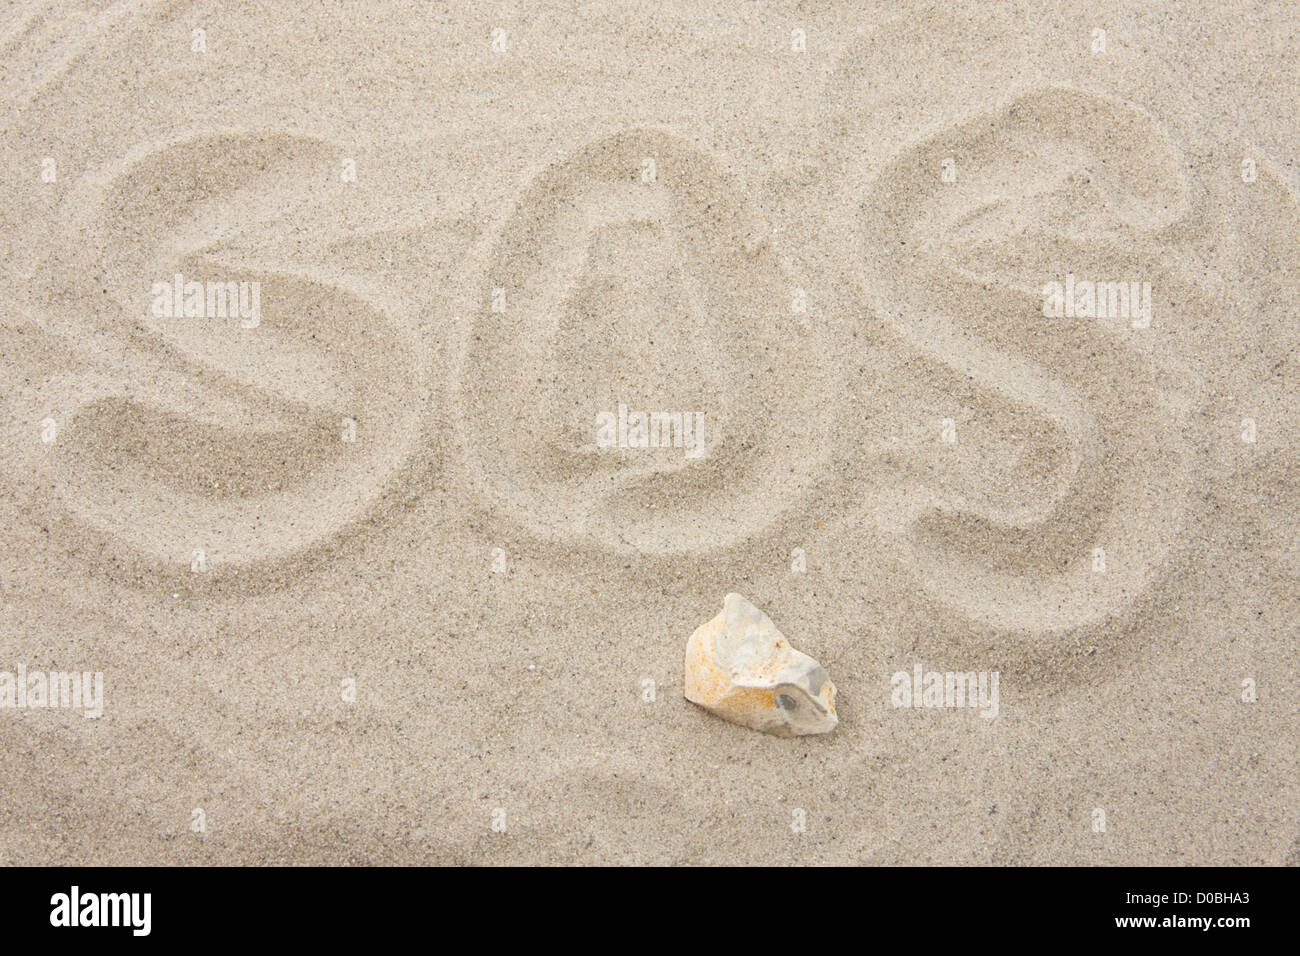 SOS letters written in sand - Stock Image